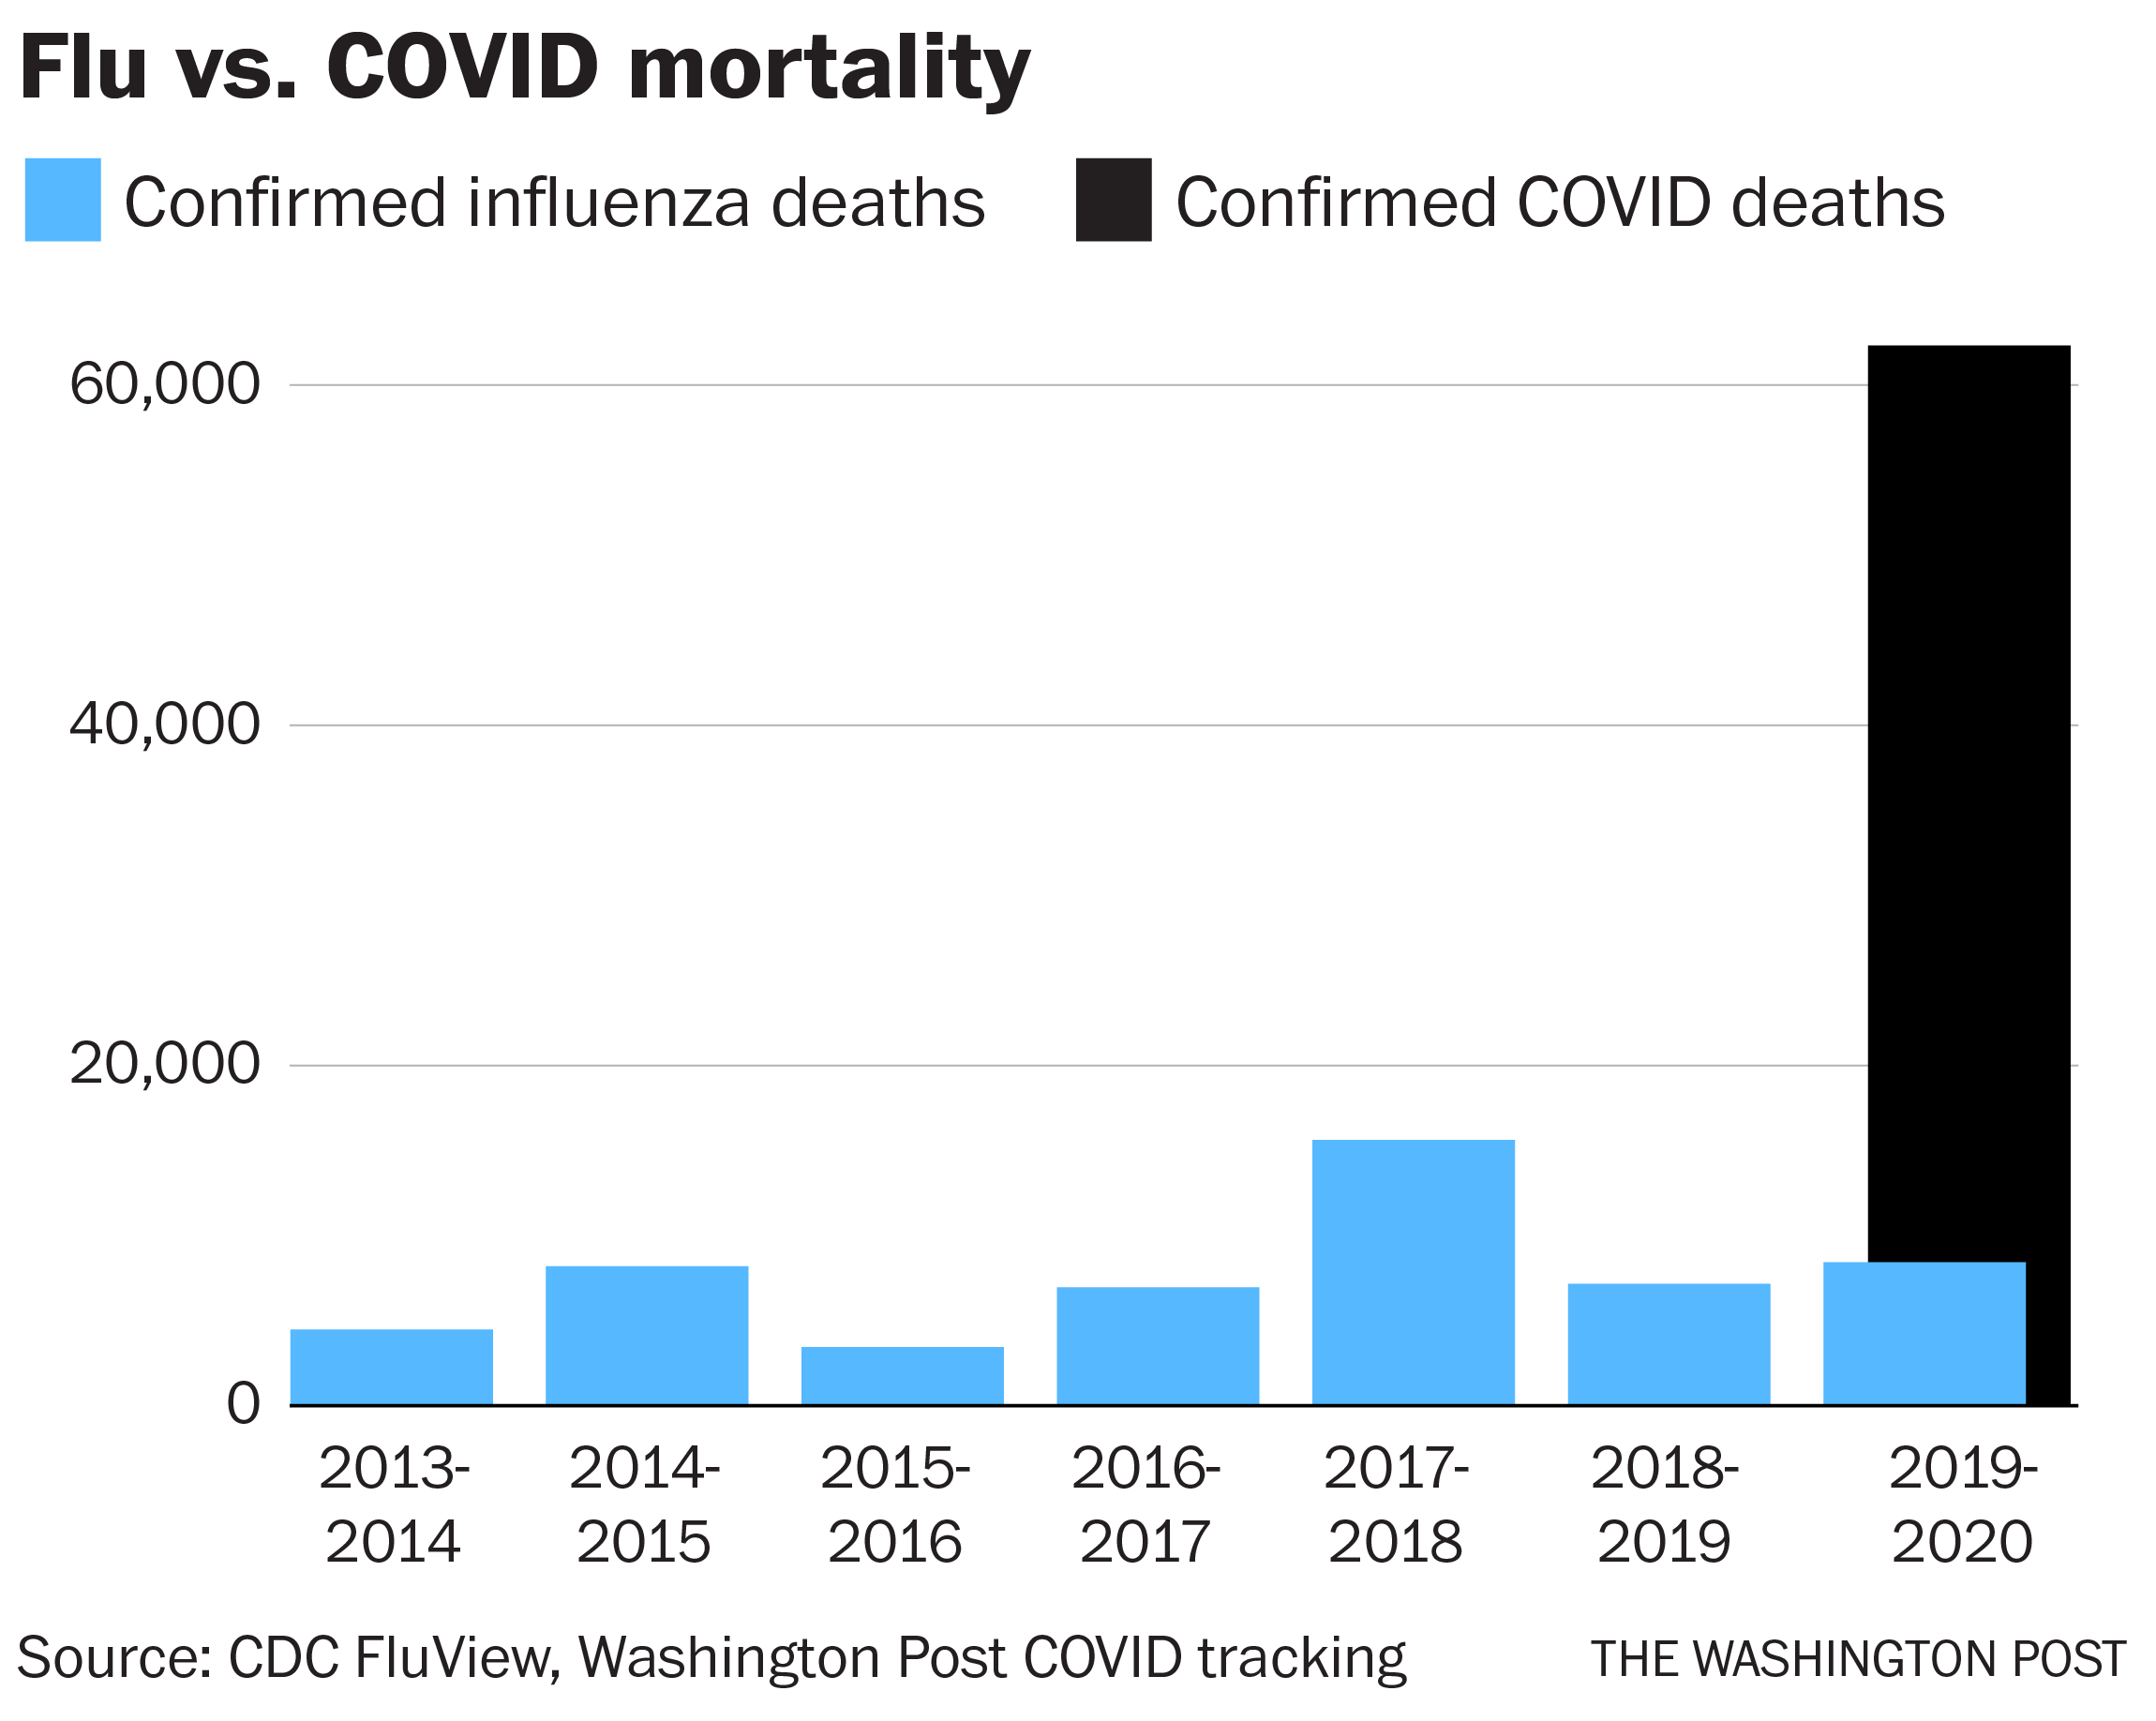 How to compare coronavirus deaths to flu deaths more accurately - The  Washington Post